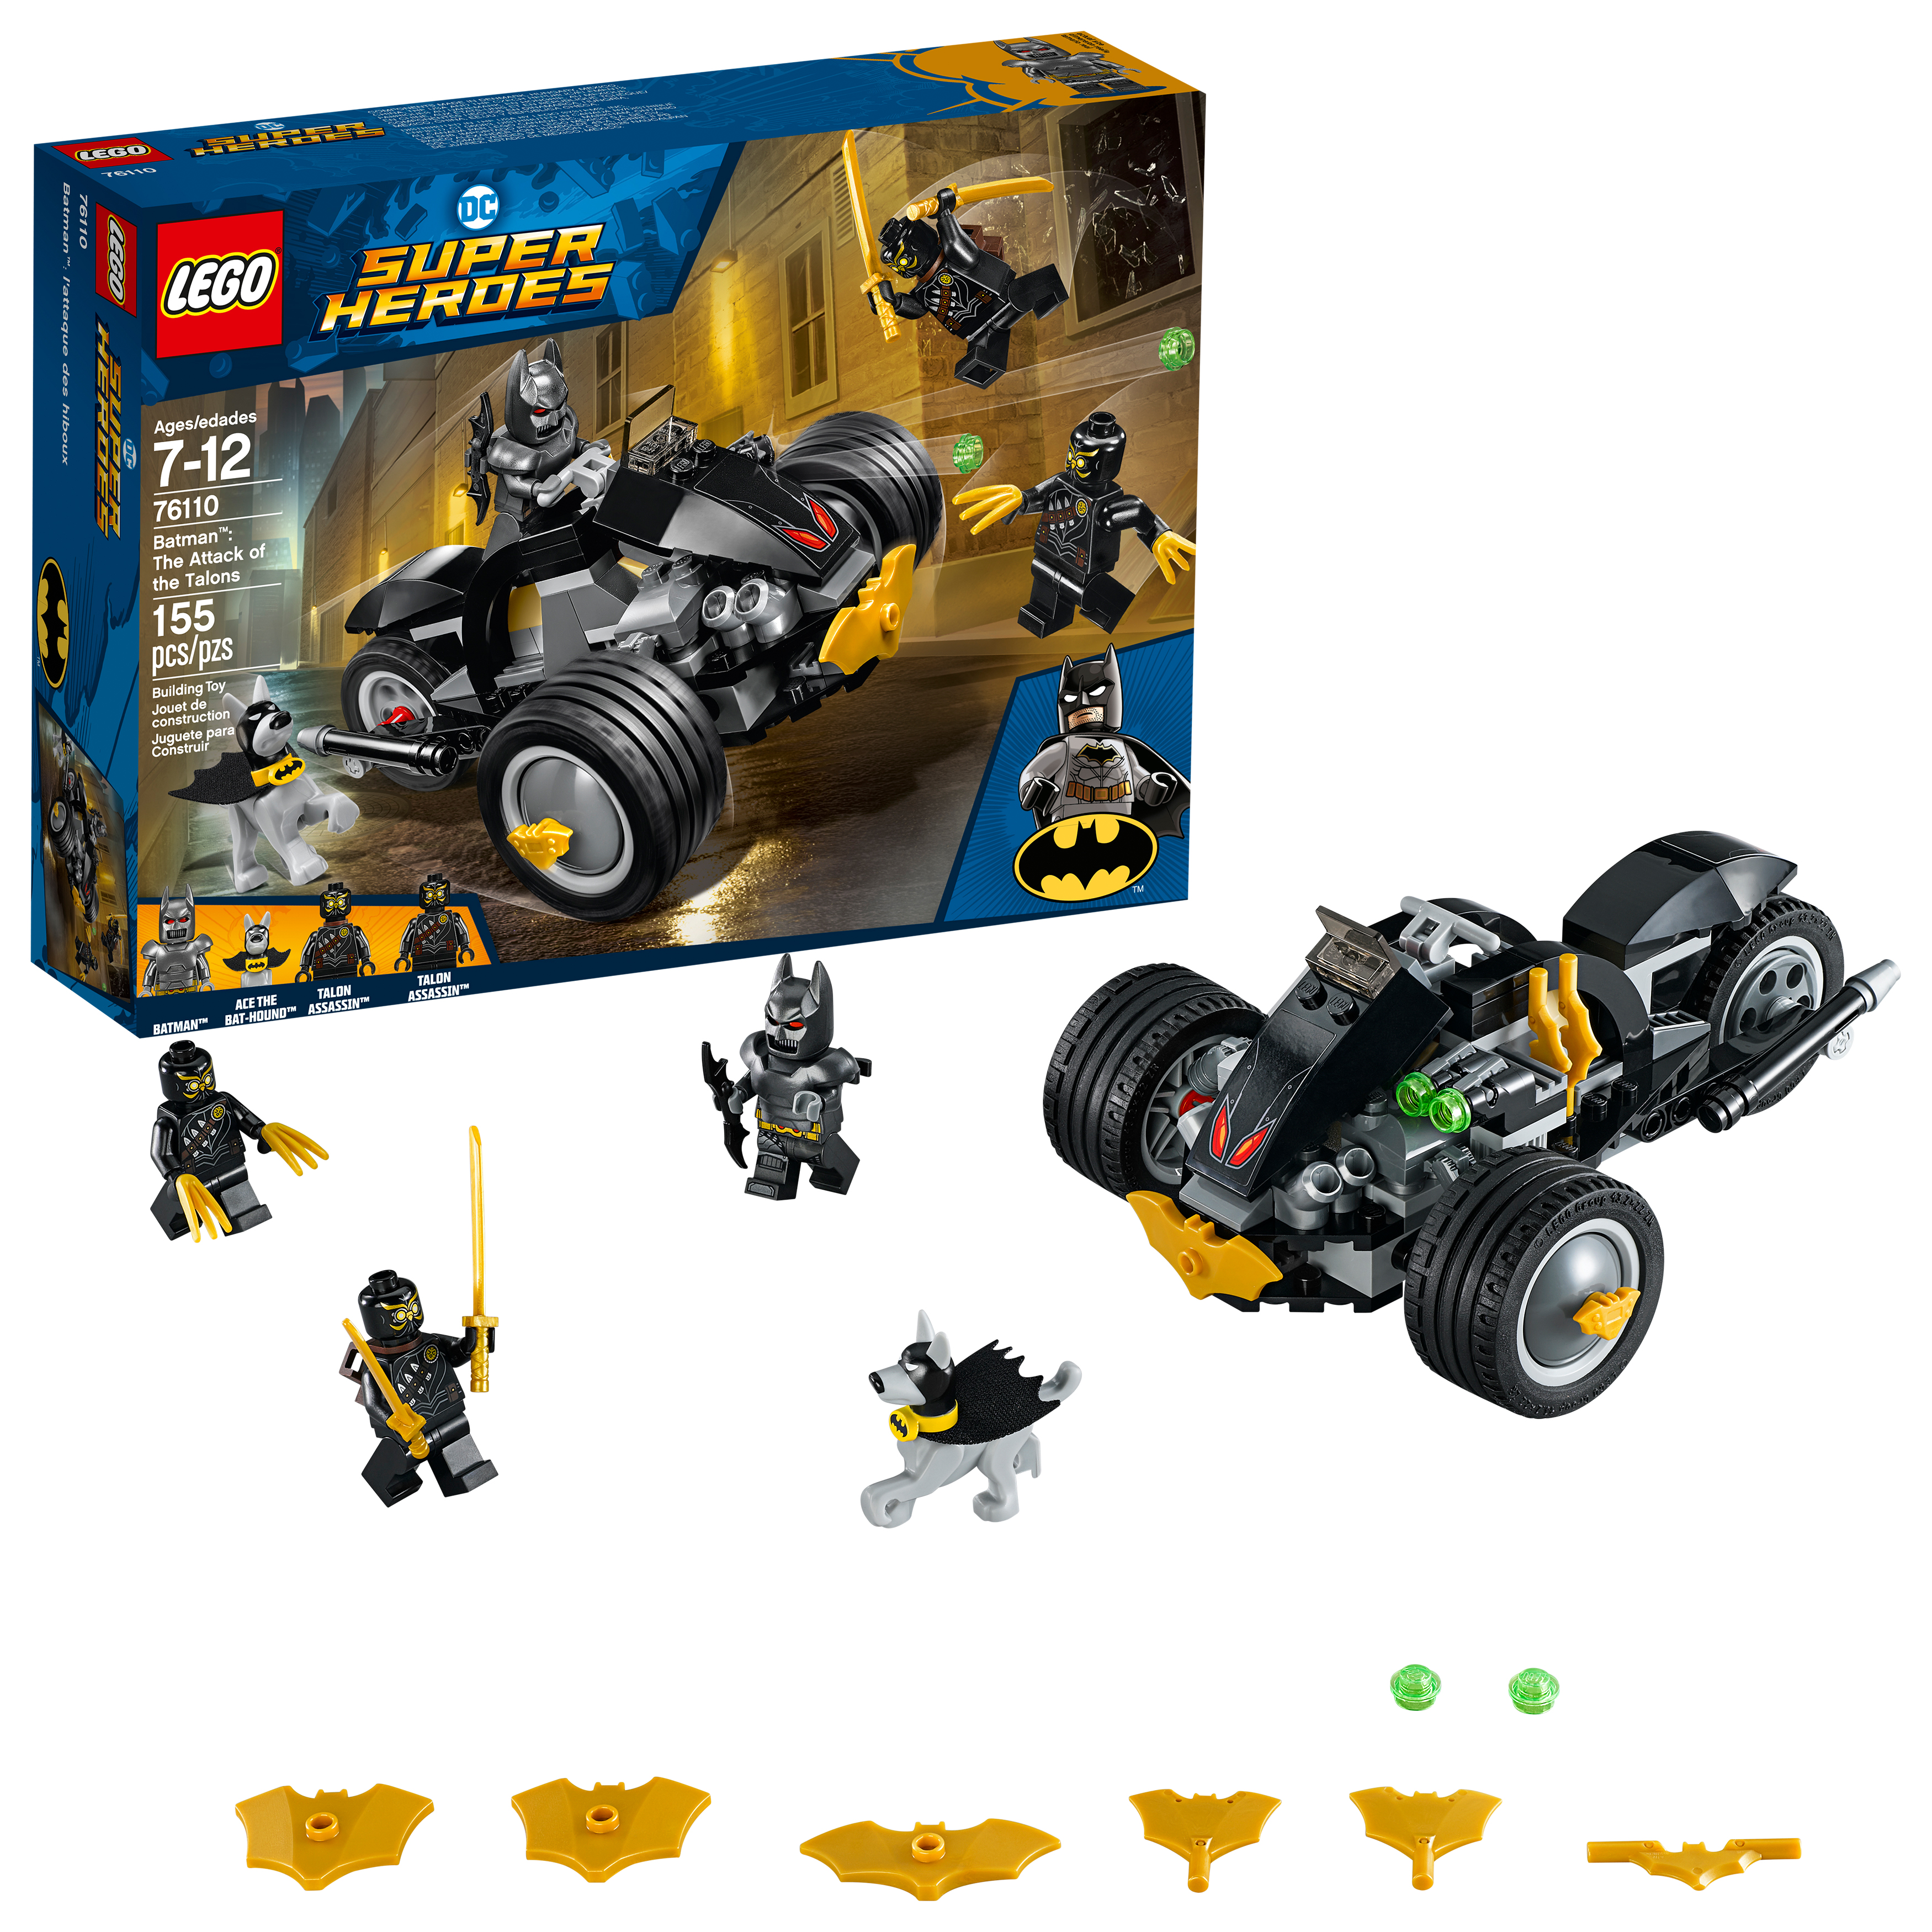 Lego Super Heroes Batman: The Attack of the Talons 76110 by LEGO System Inc